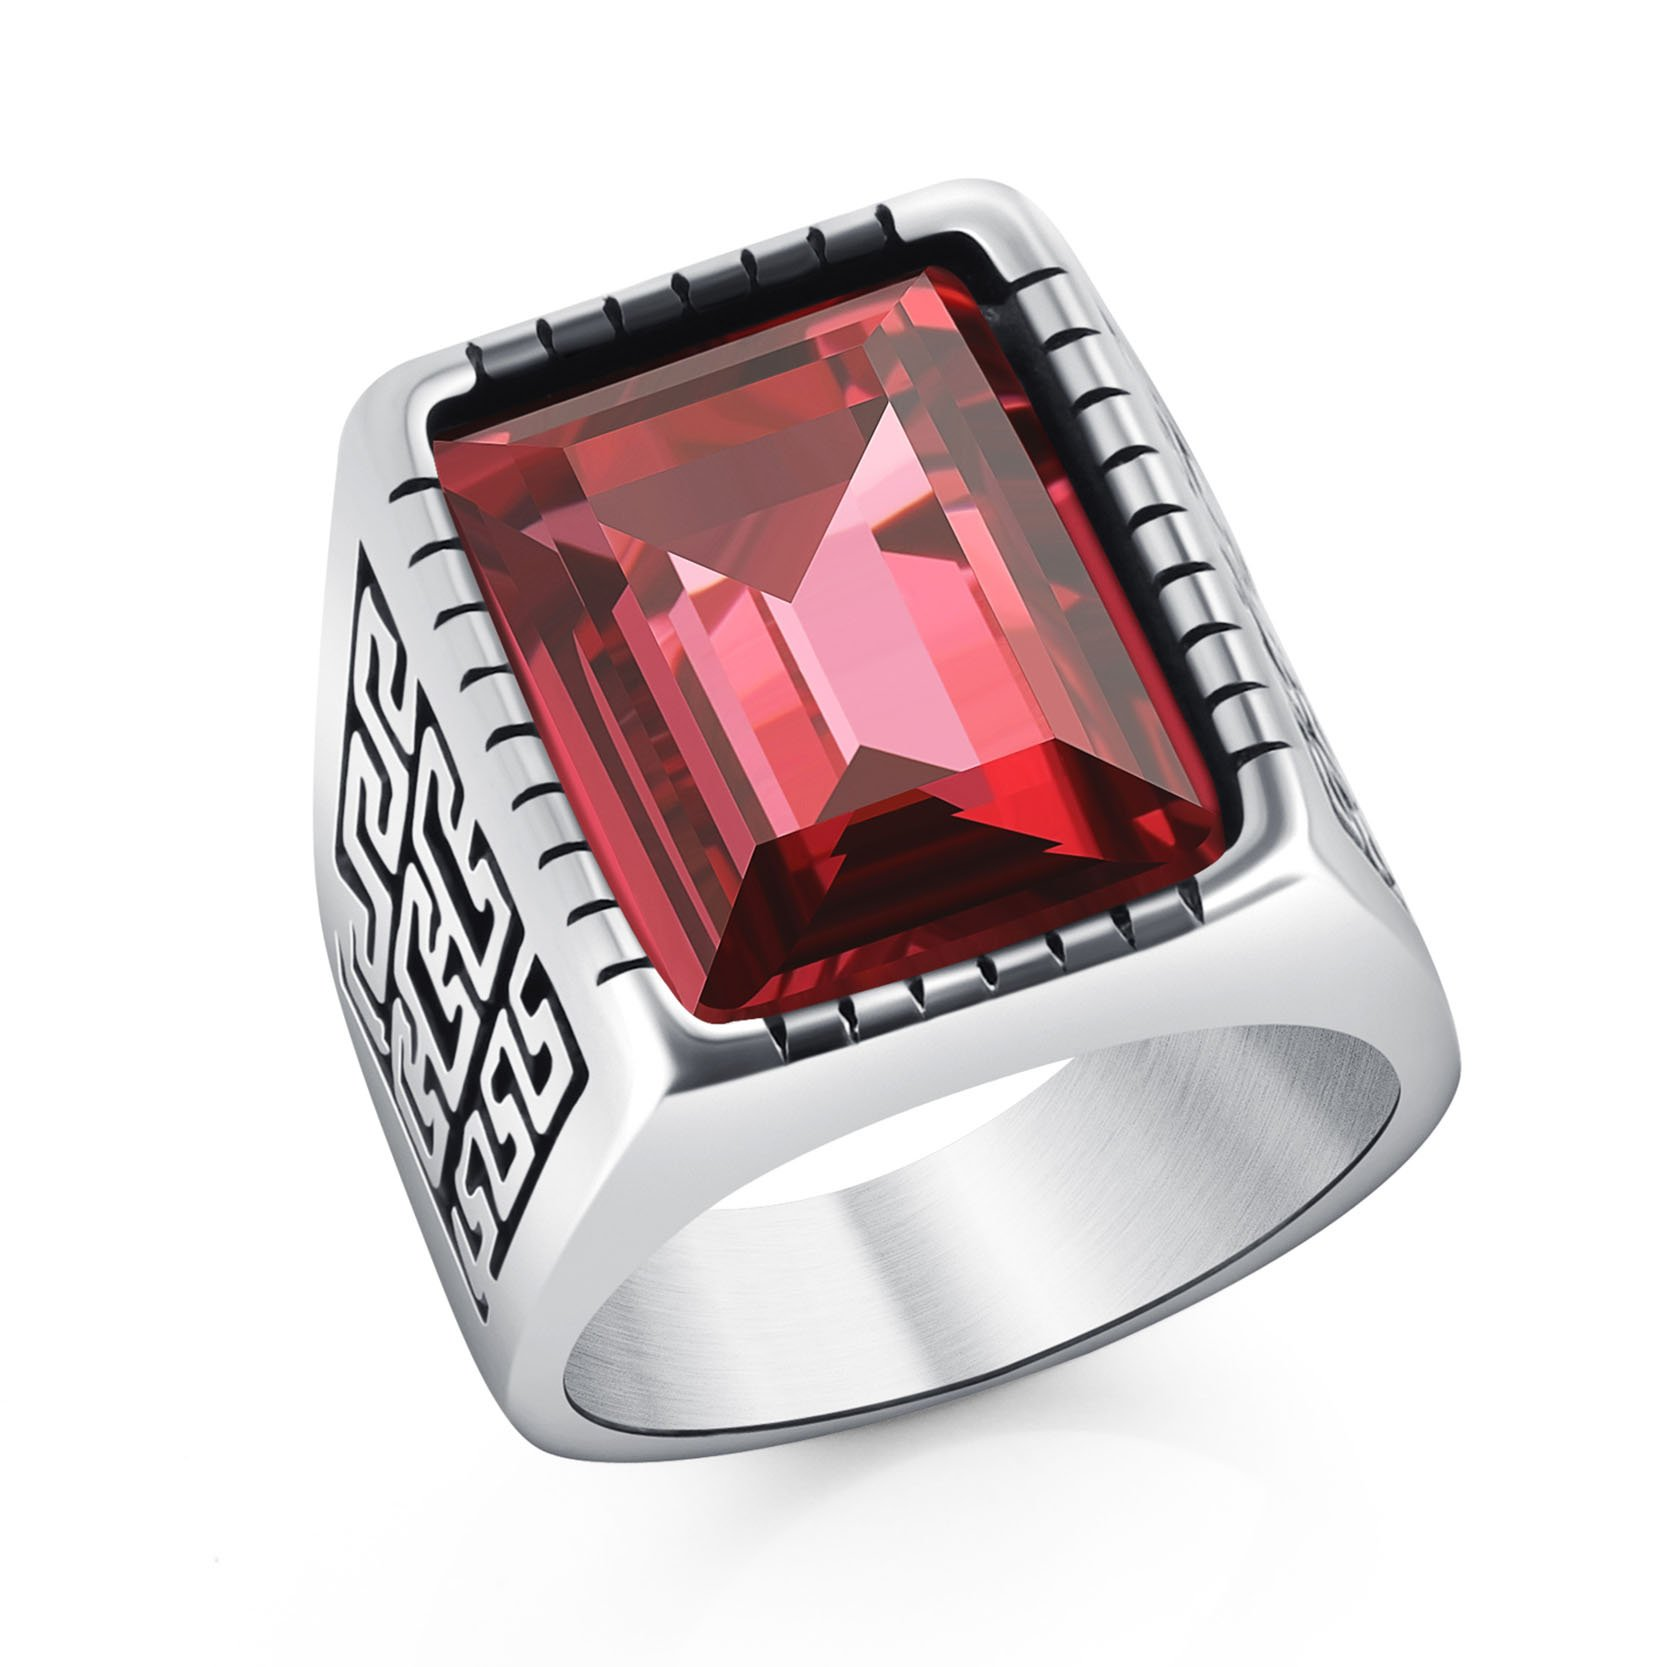 Cool Great Wall Pattern Ring Stainless Steel Biker Rings for Men Boys Accessories Red Crystal Size 11